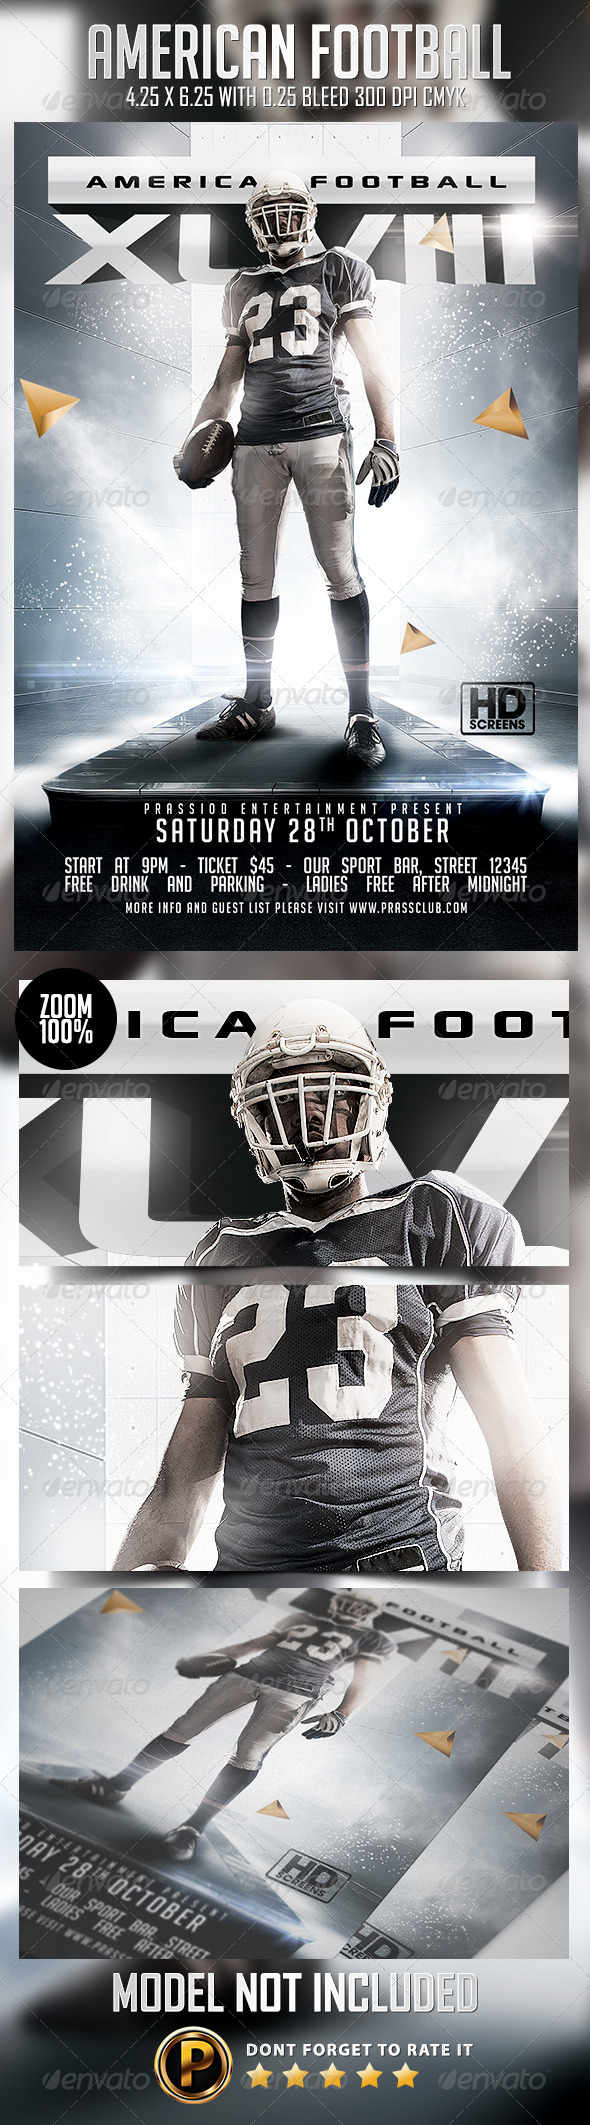 American Football Flyer Template By Prassiod Graphicriver